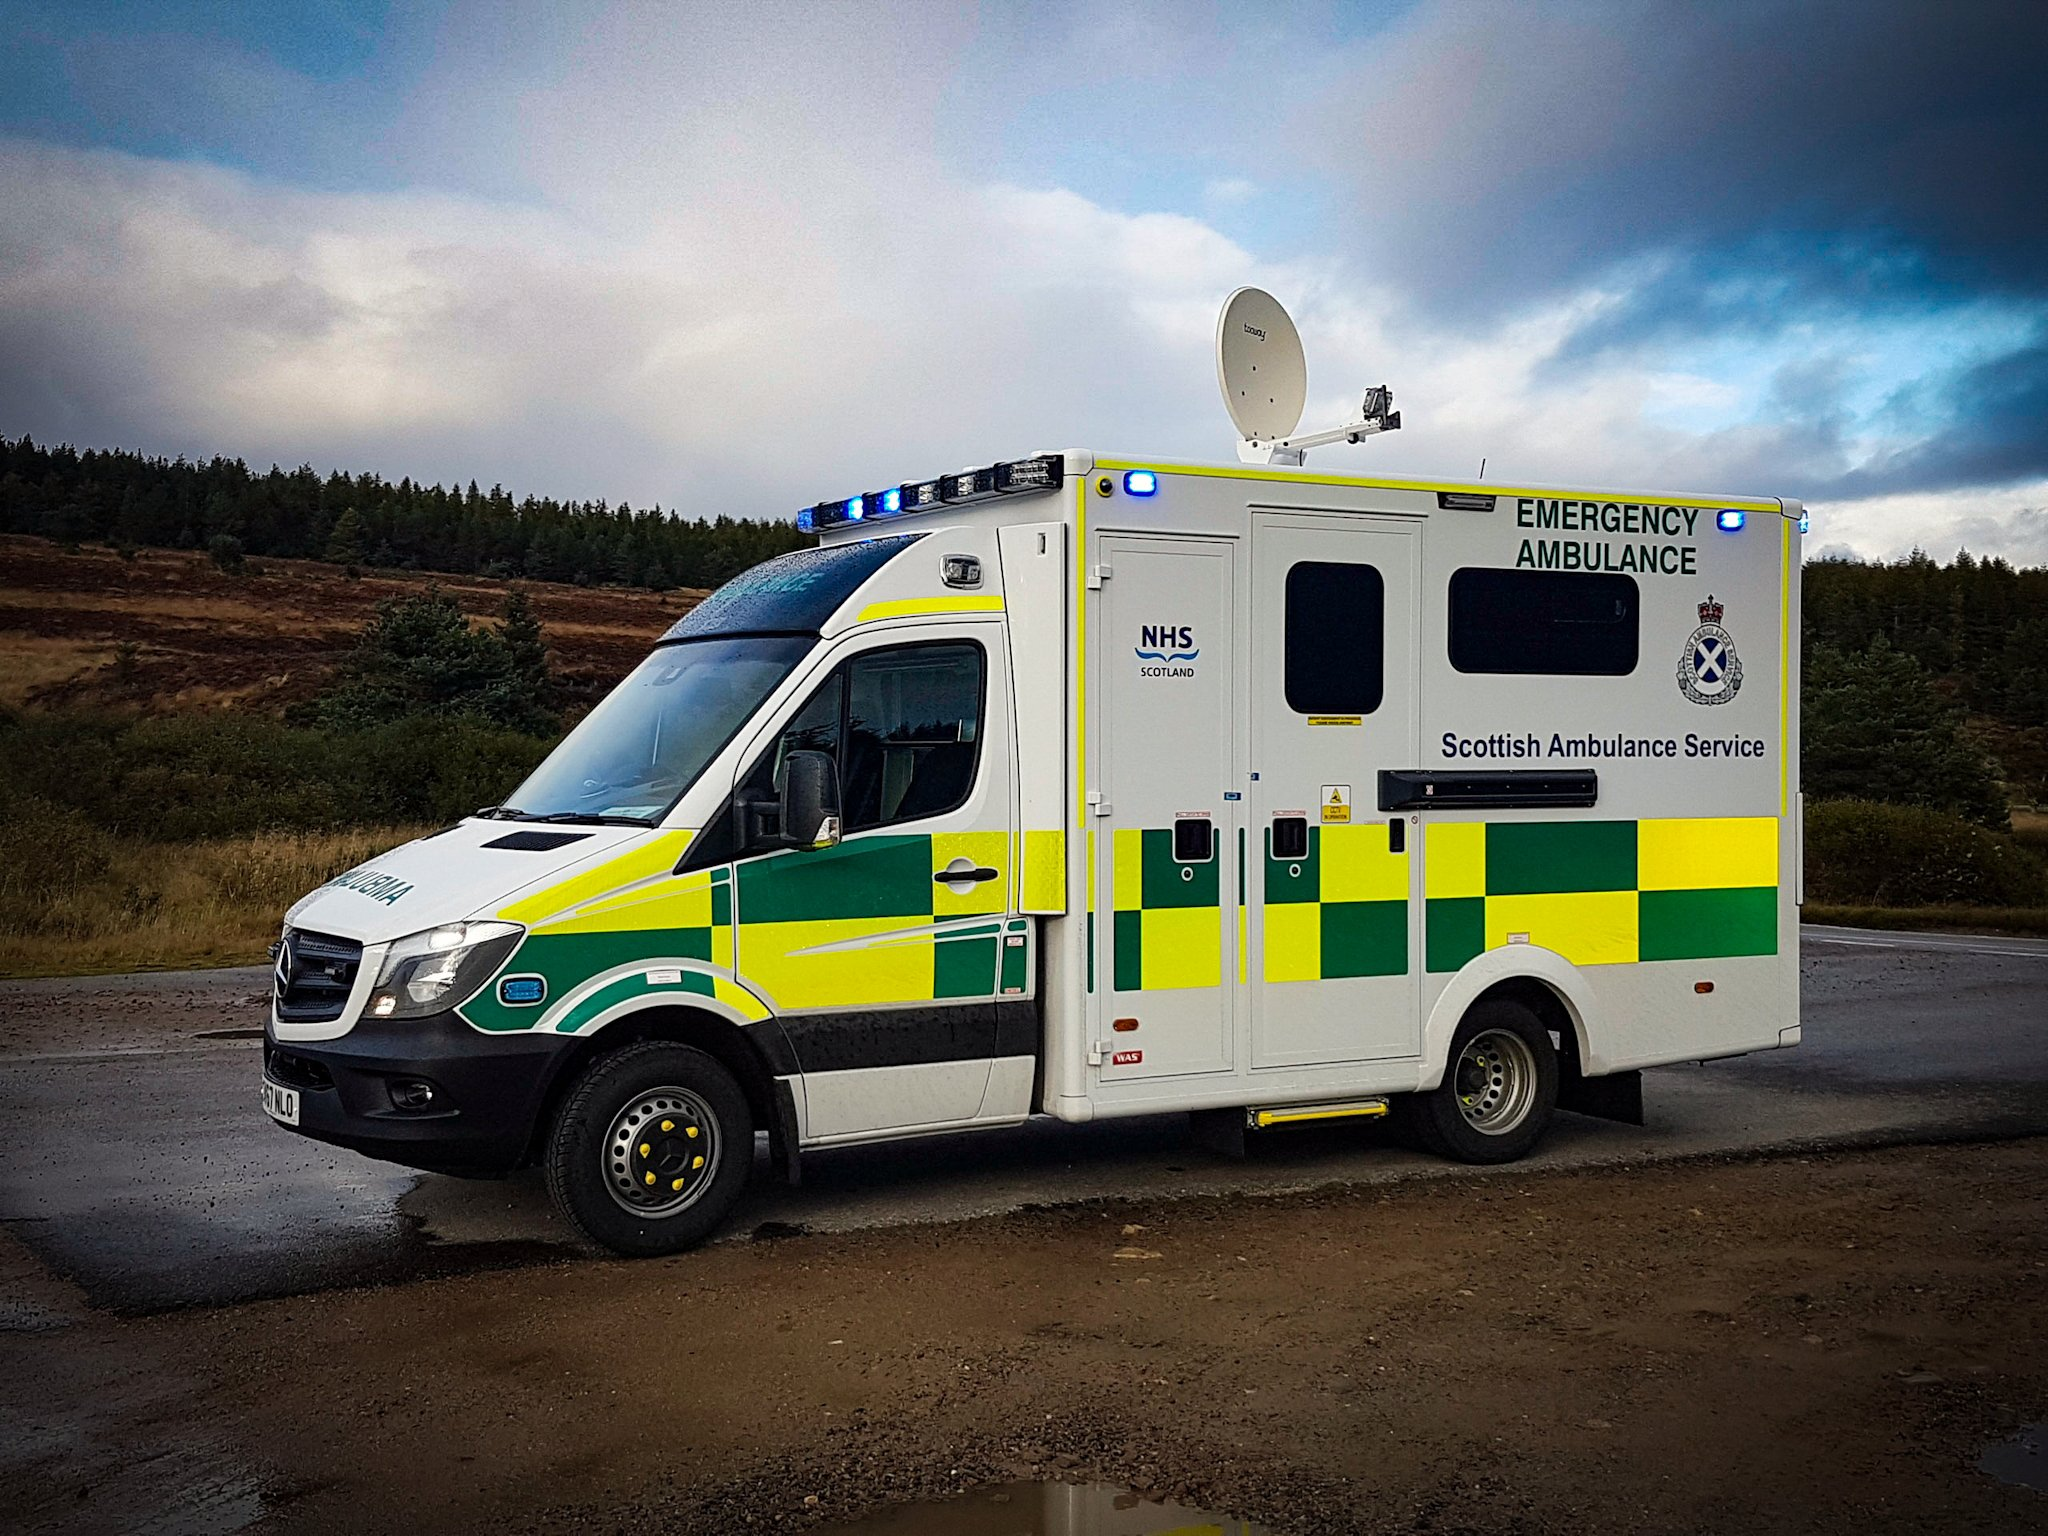 Scottish Ambulance with Satellite Uplink for Remote Imaging Diagnostics